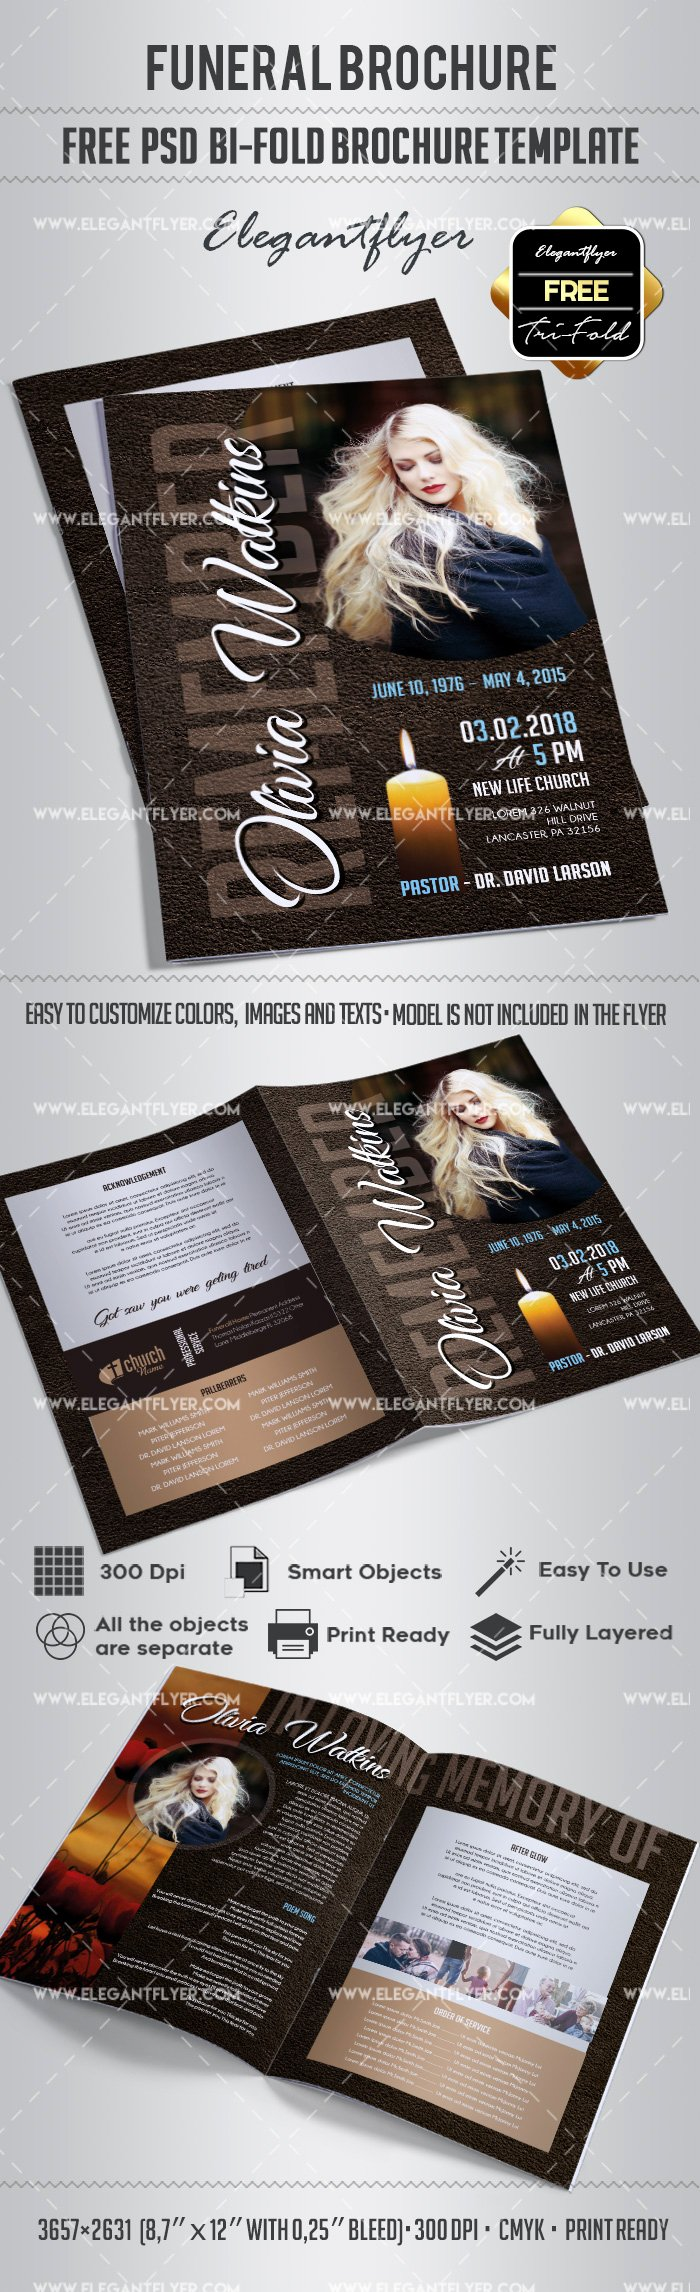 Free Bi Fold Brochure for Funeral – by Elegantflyer